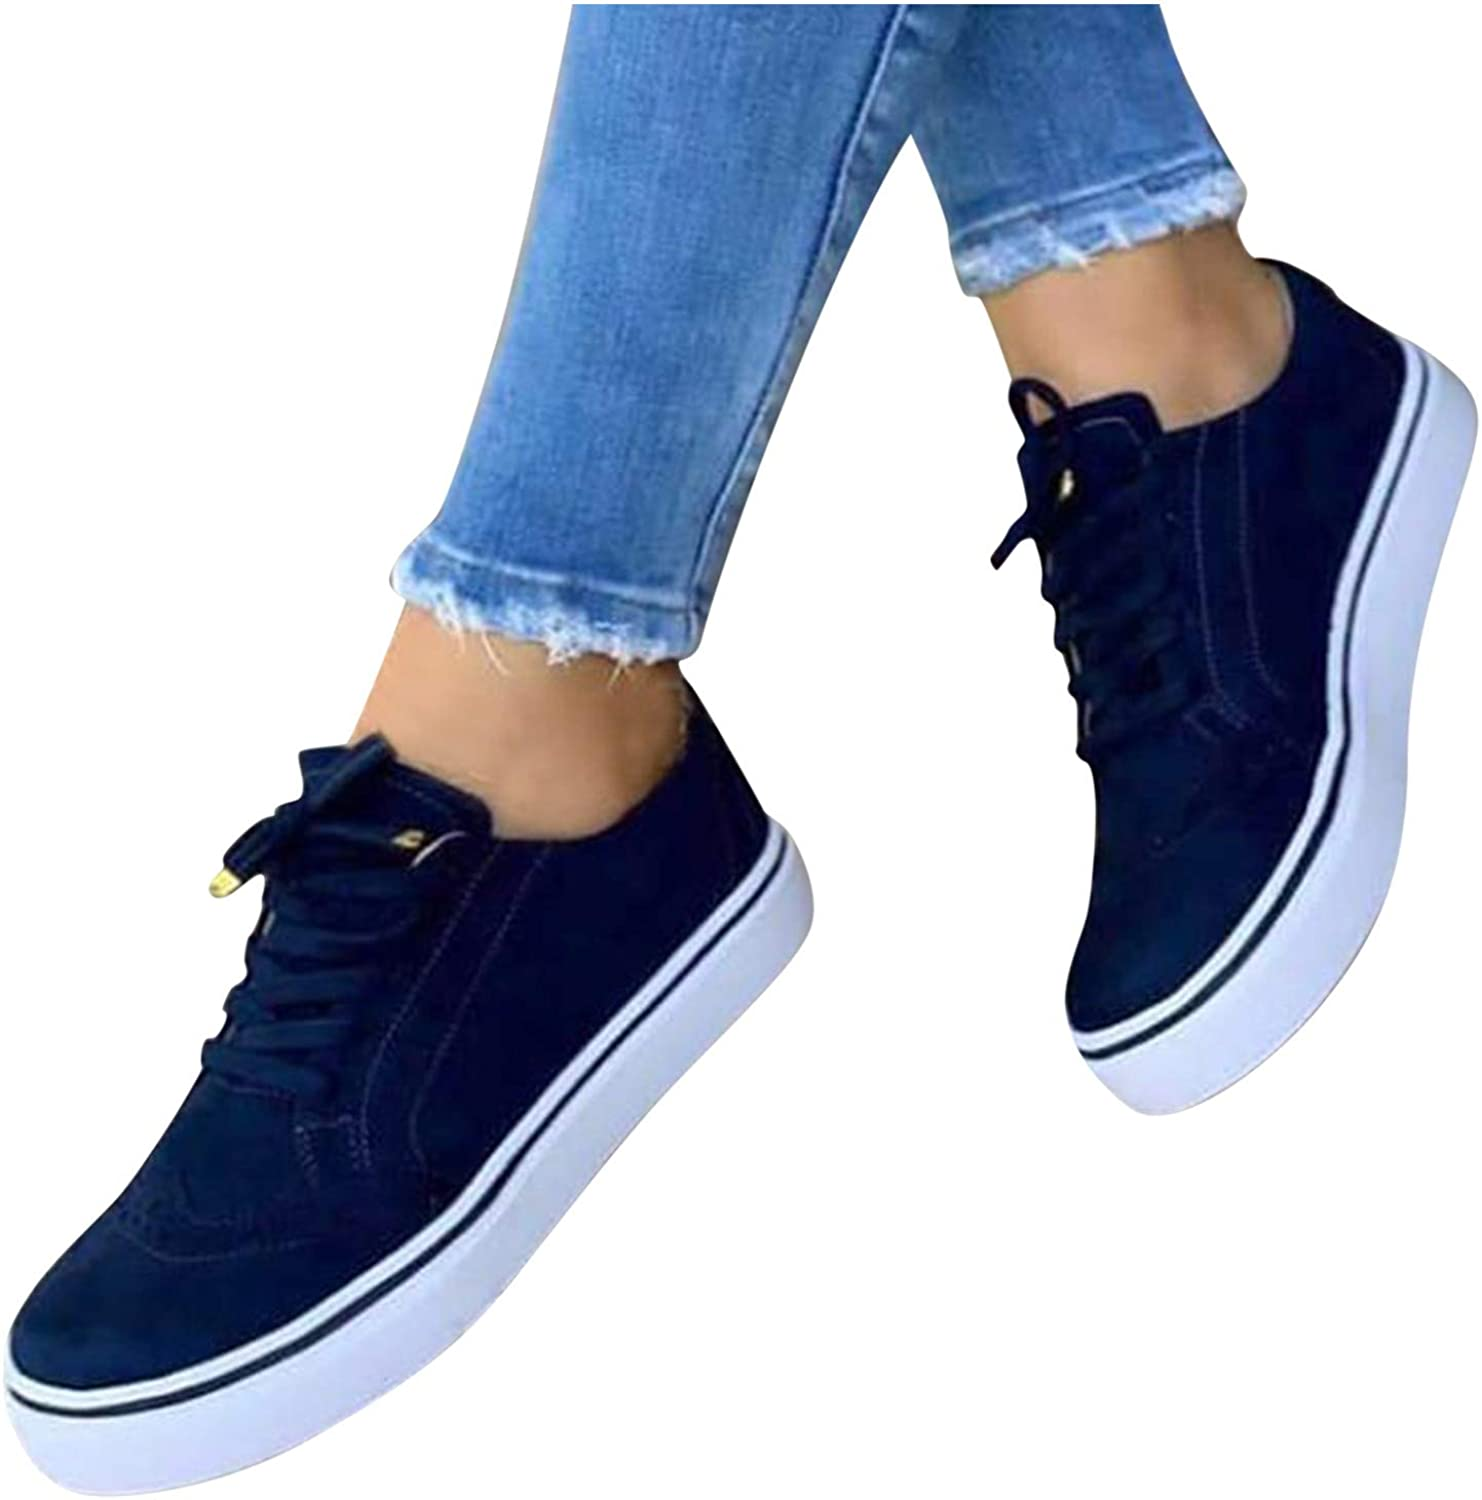 AODONG Sneakers for Women Running Shoes Slip On Sneakers Comfort Walking Shoes Lace Up Flat Lightweight Casual Sneakers